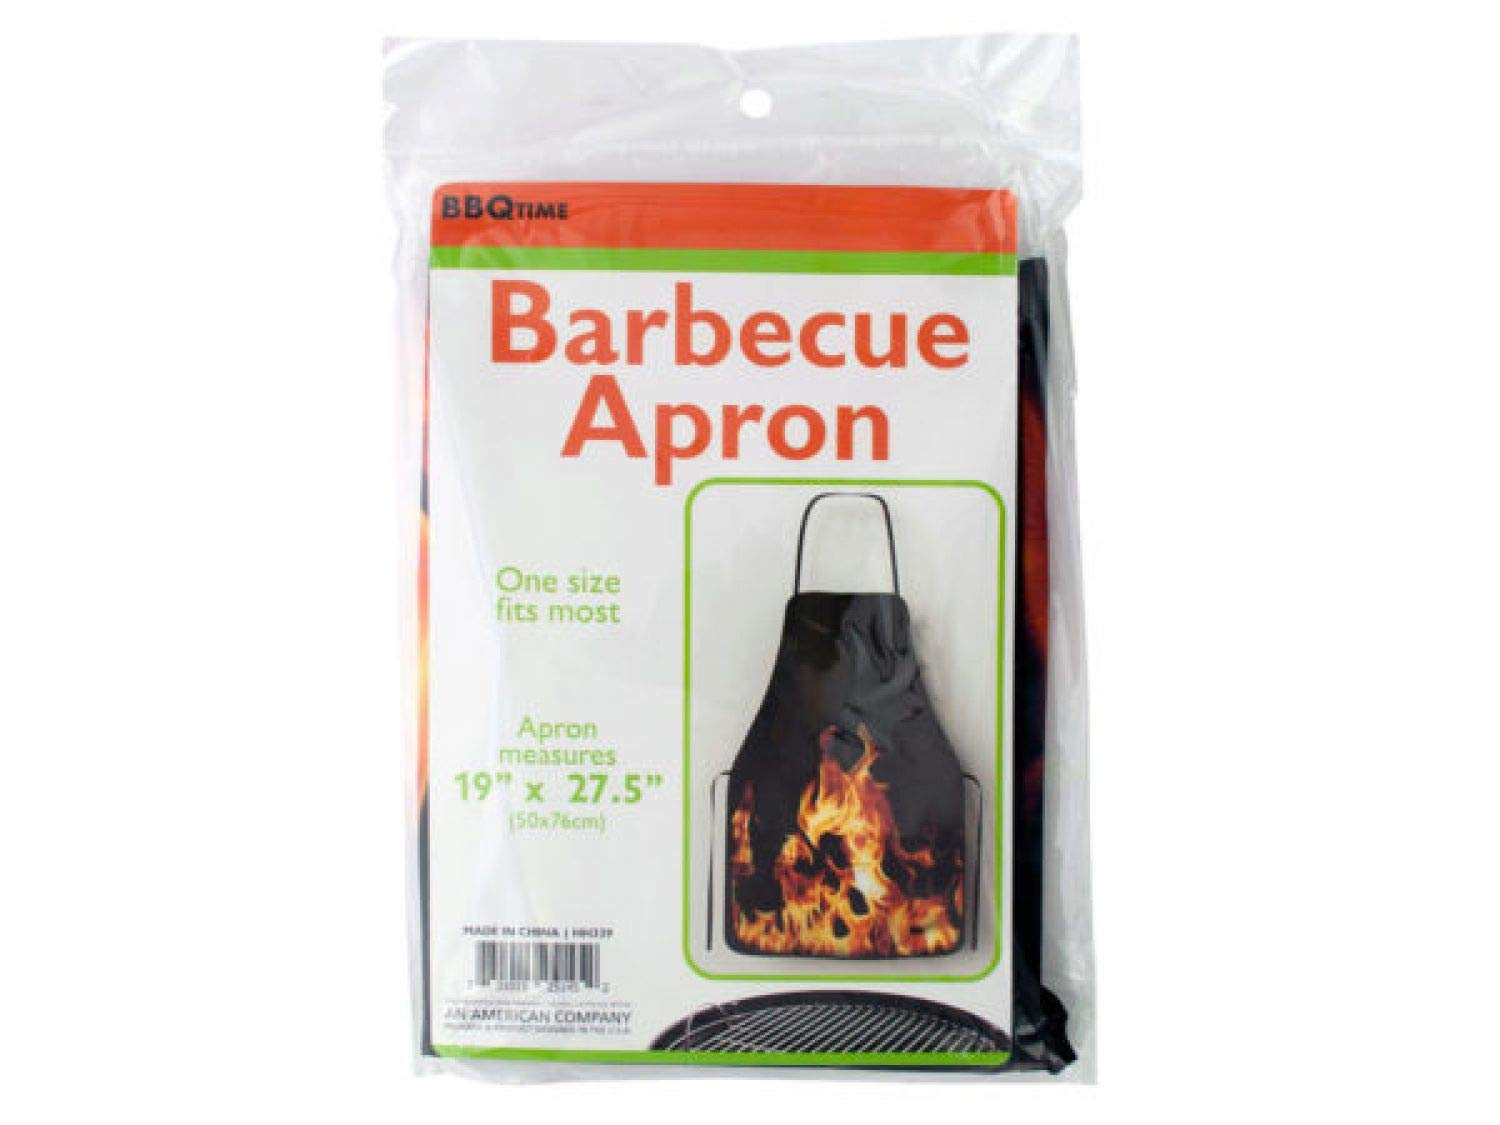 Amazon.com: Barbecue Apron with Flame Design - Set of 24 ...